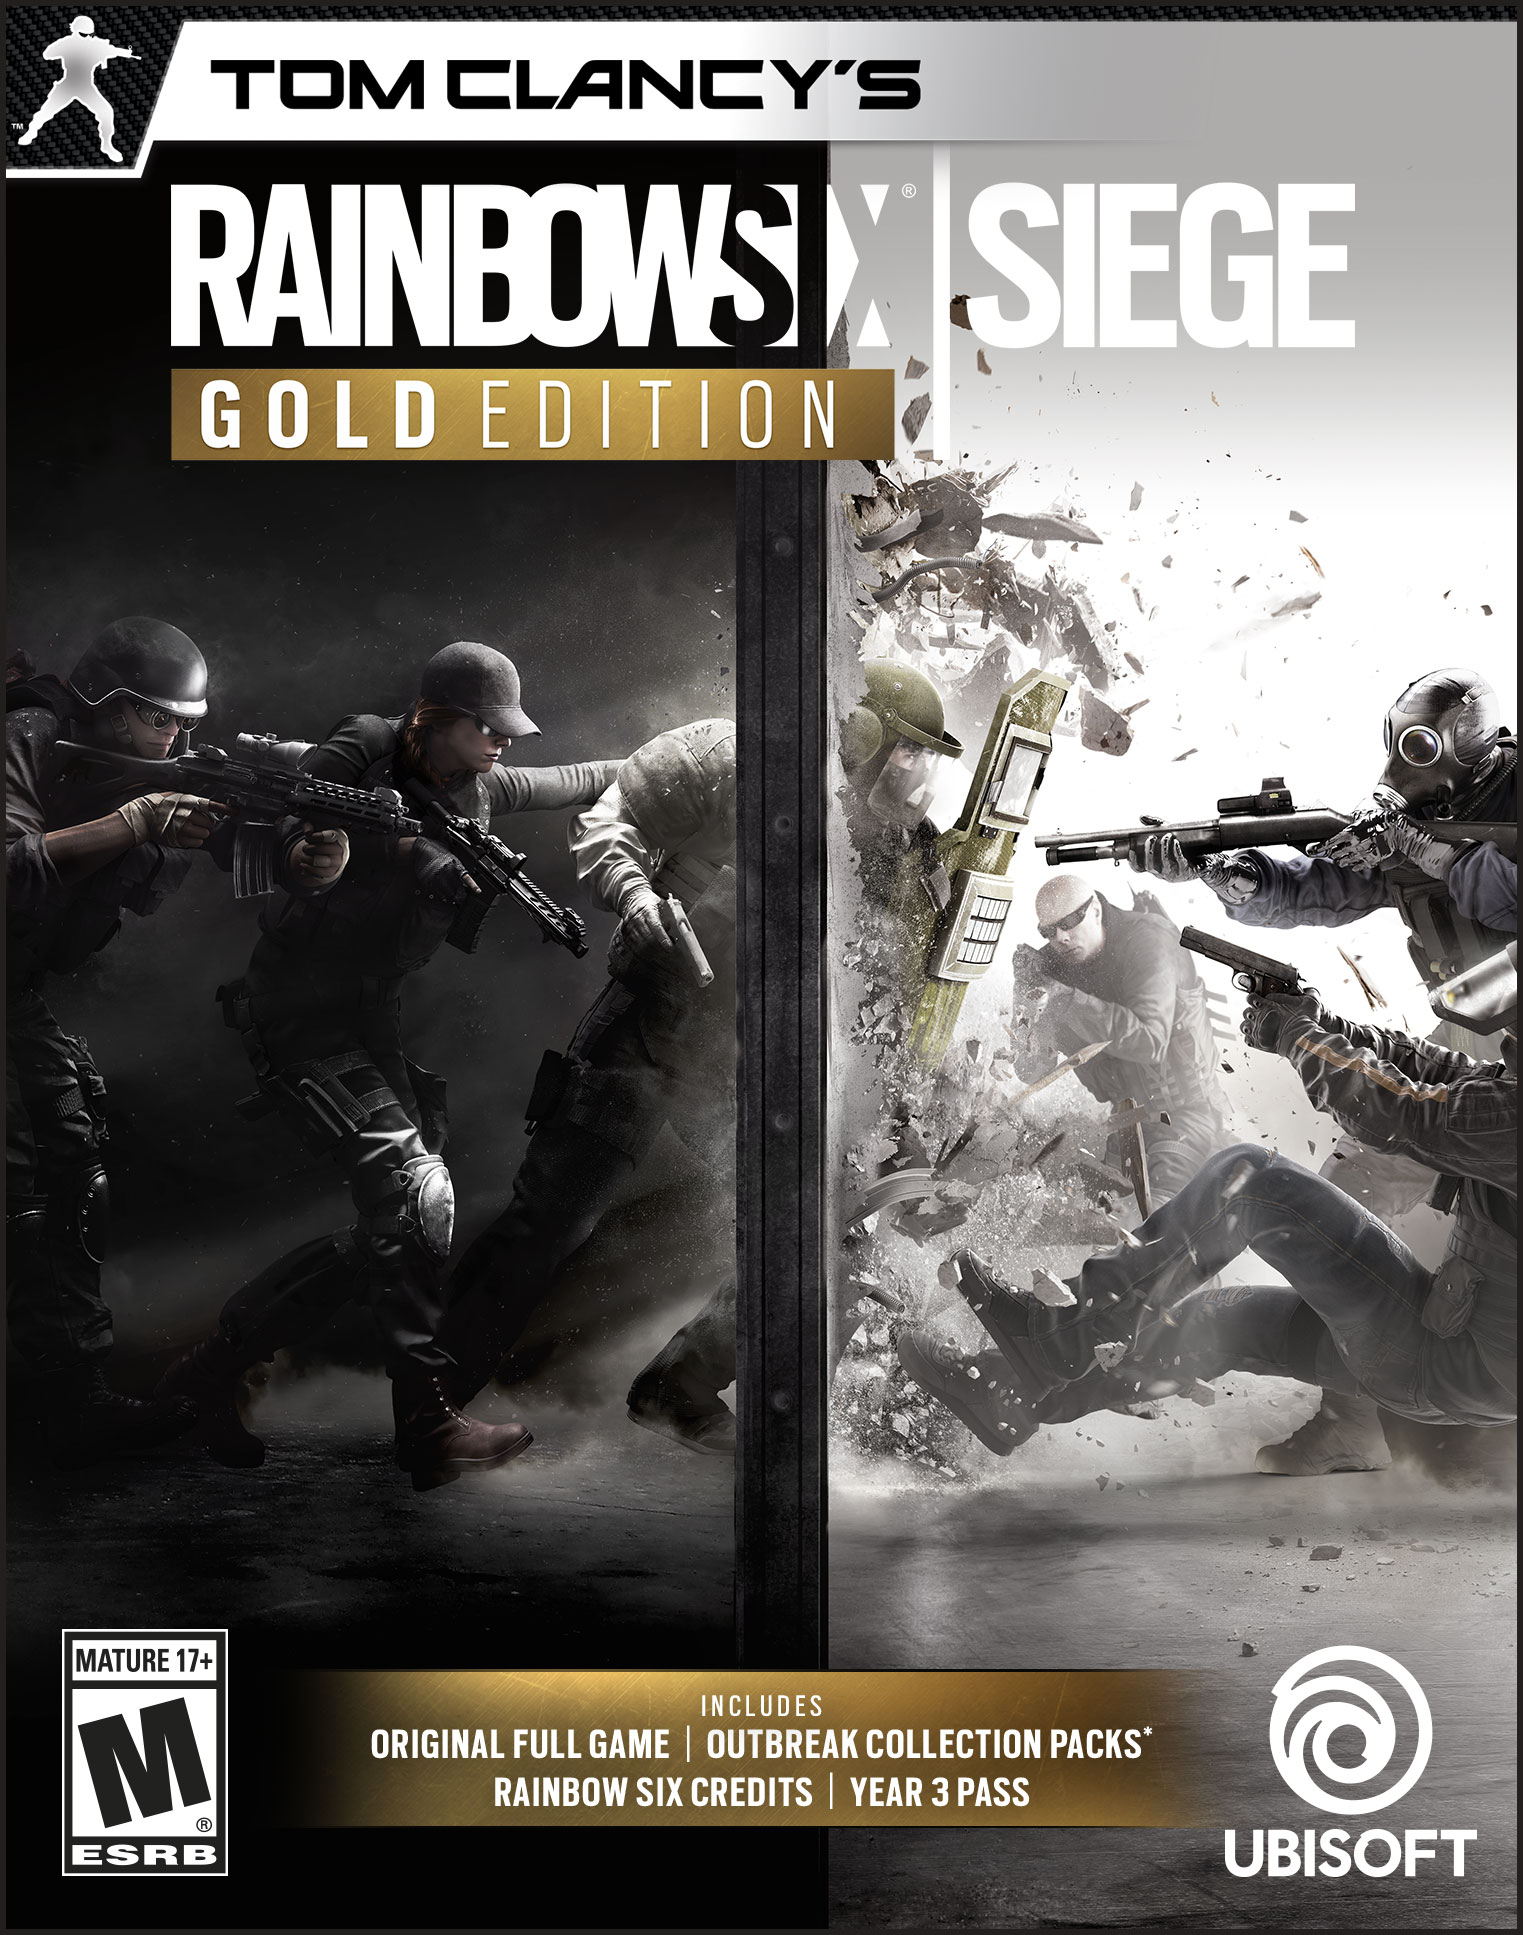 Tom Clancy's Rainbow Six Siege - Gold Edition [Online Game Code] by Ubisoft